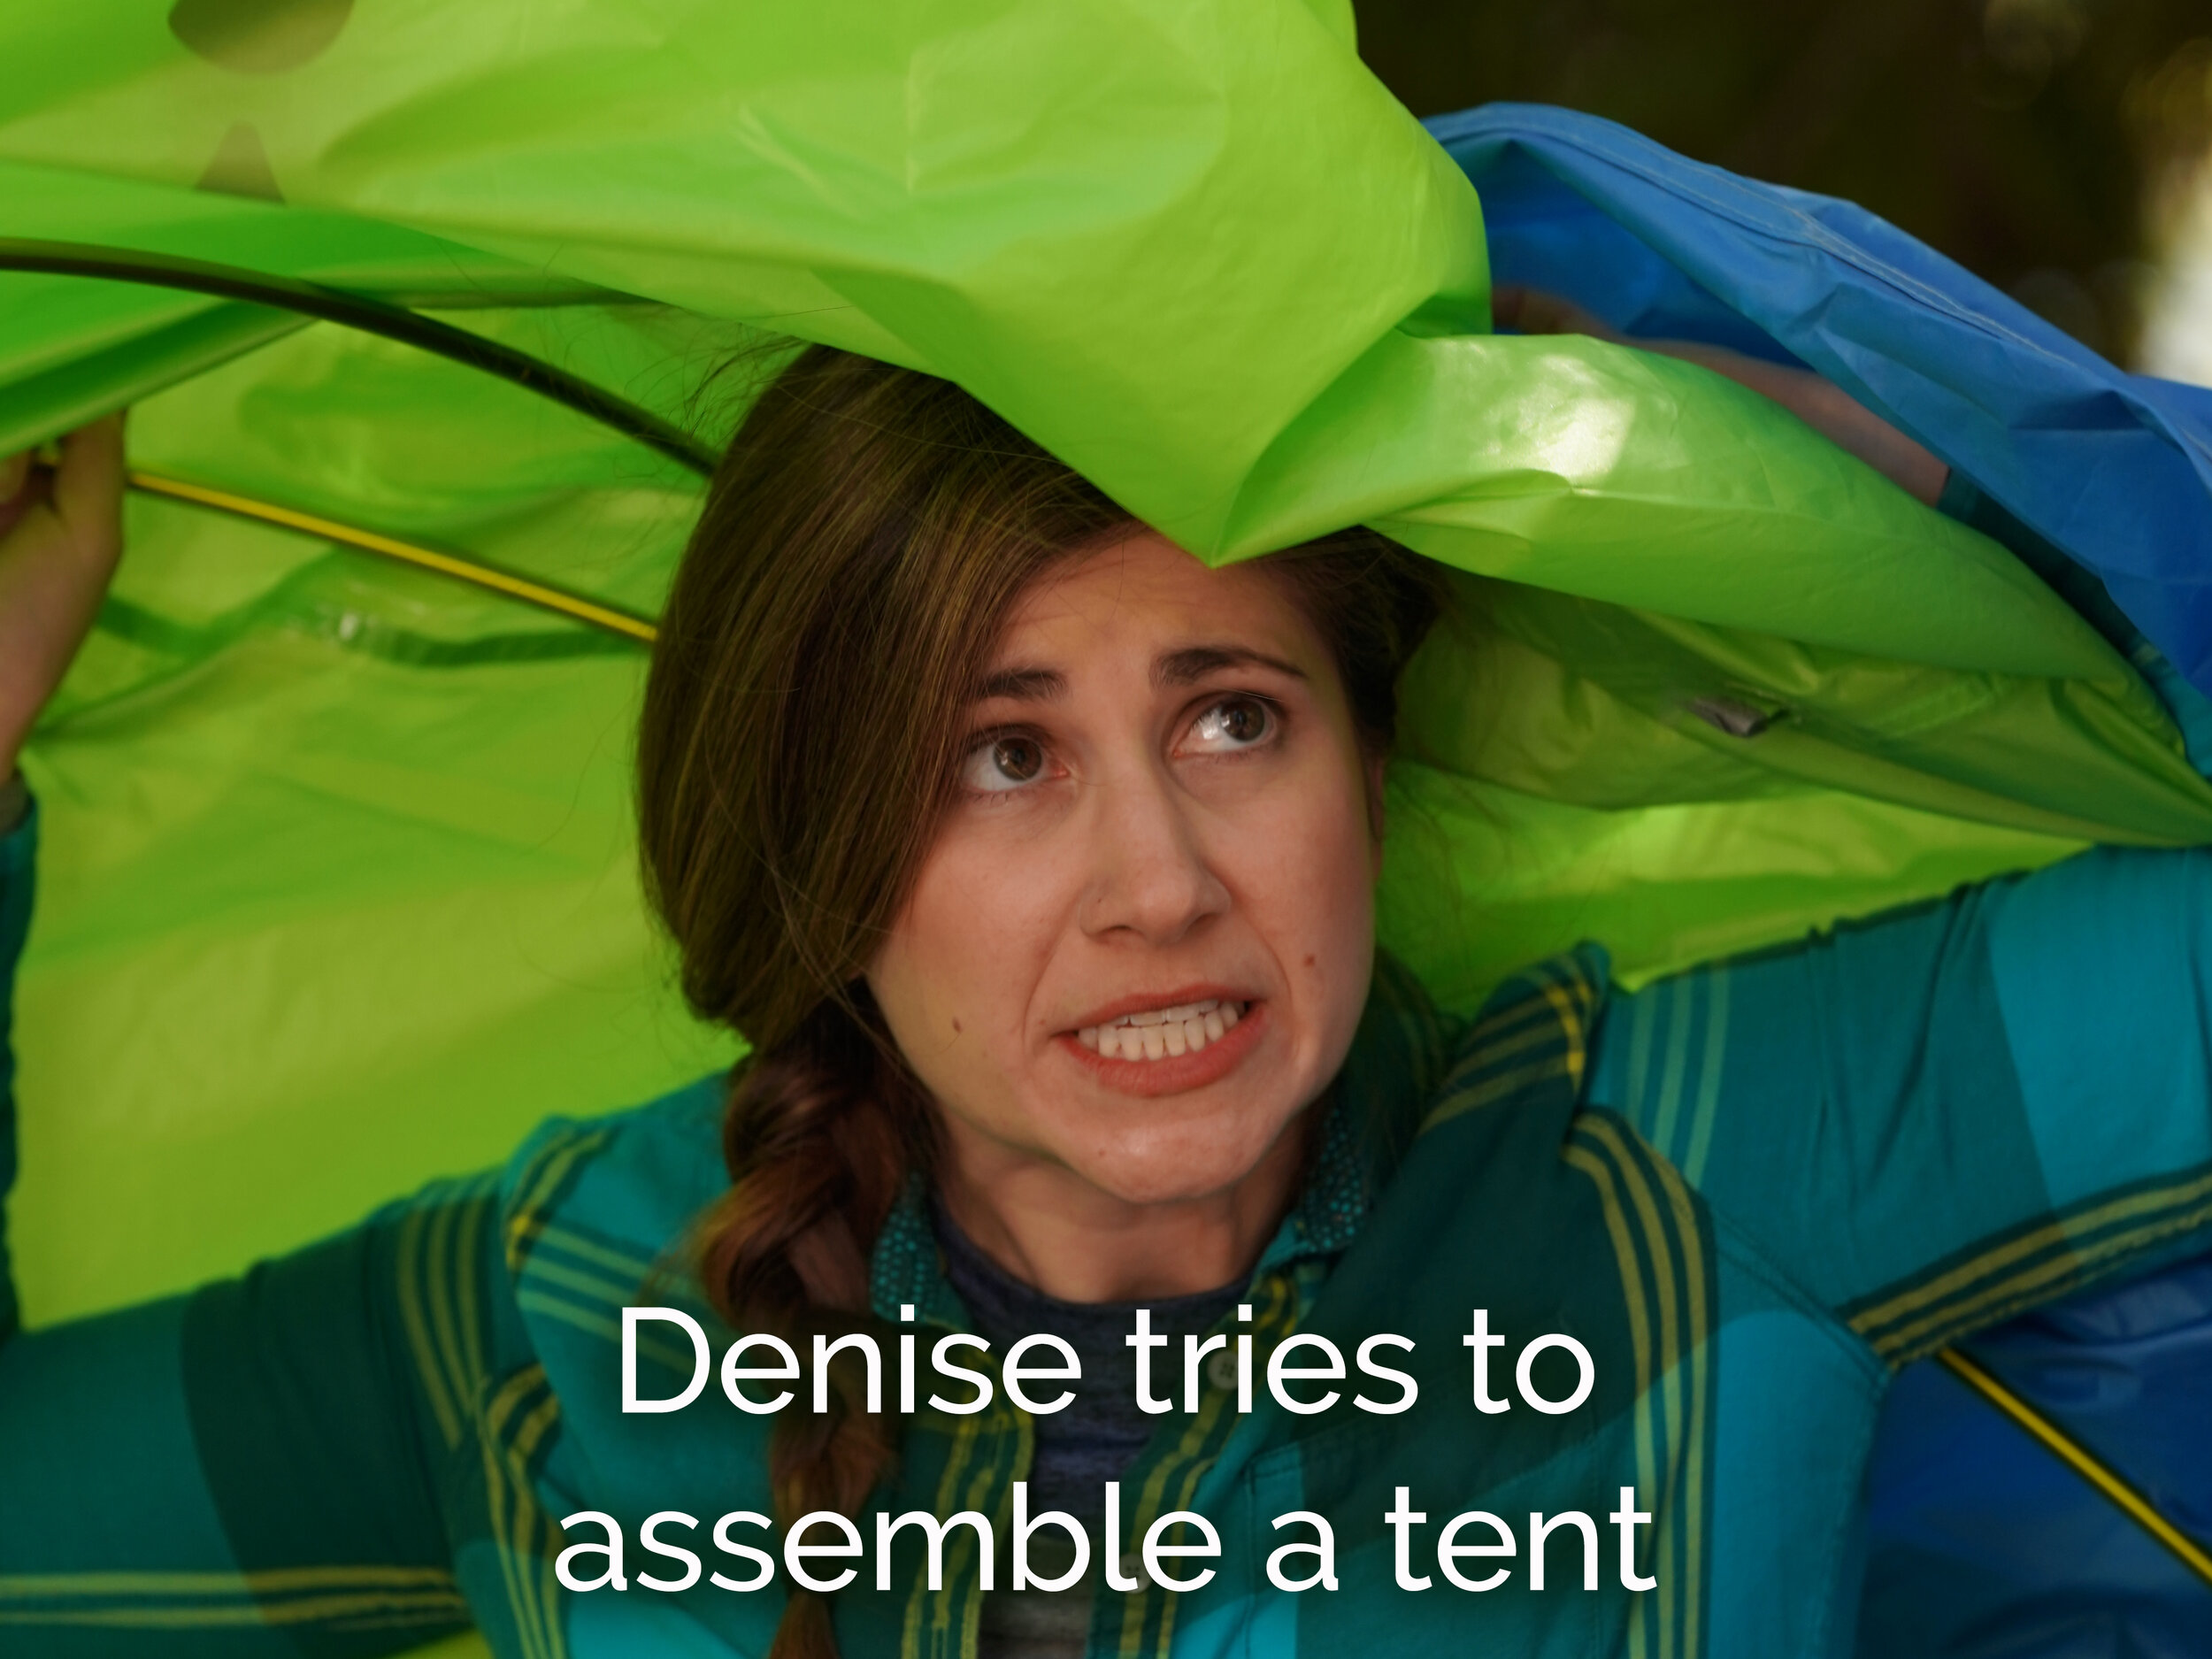 Denise tries to assemble a tent.JPG